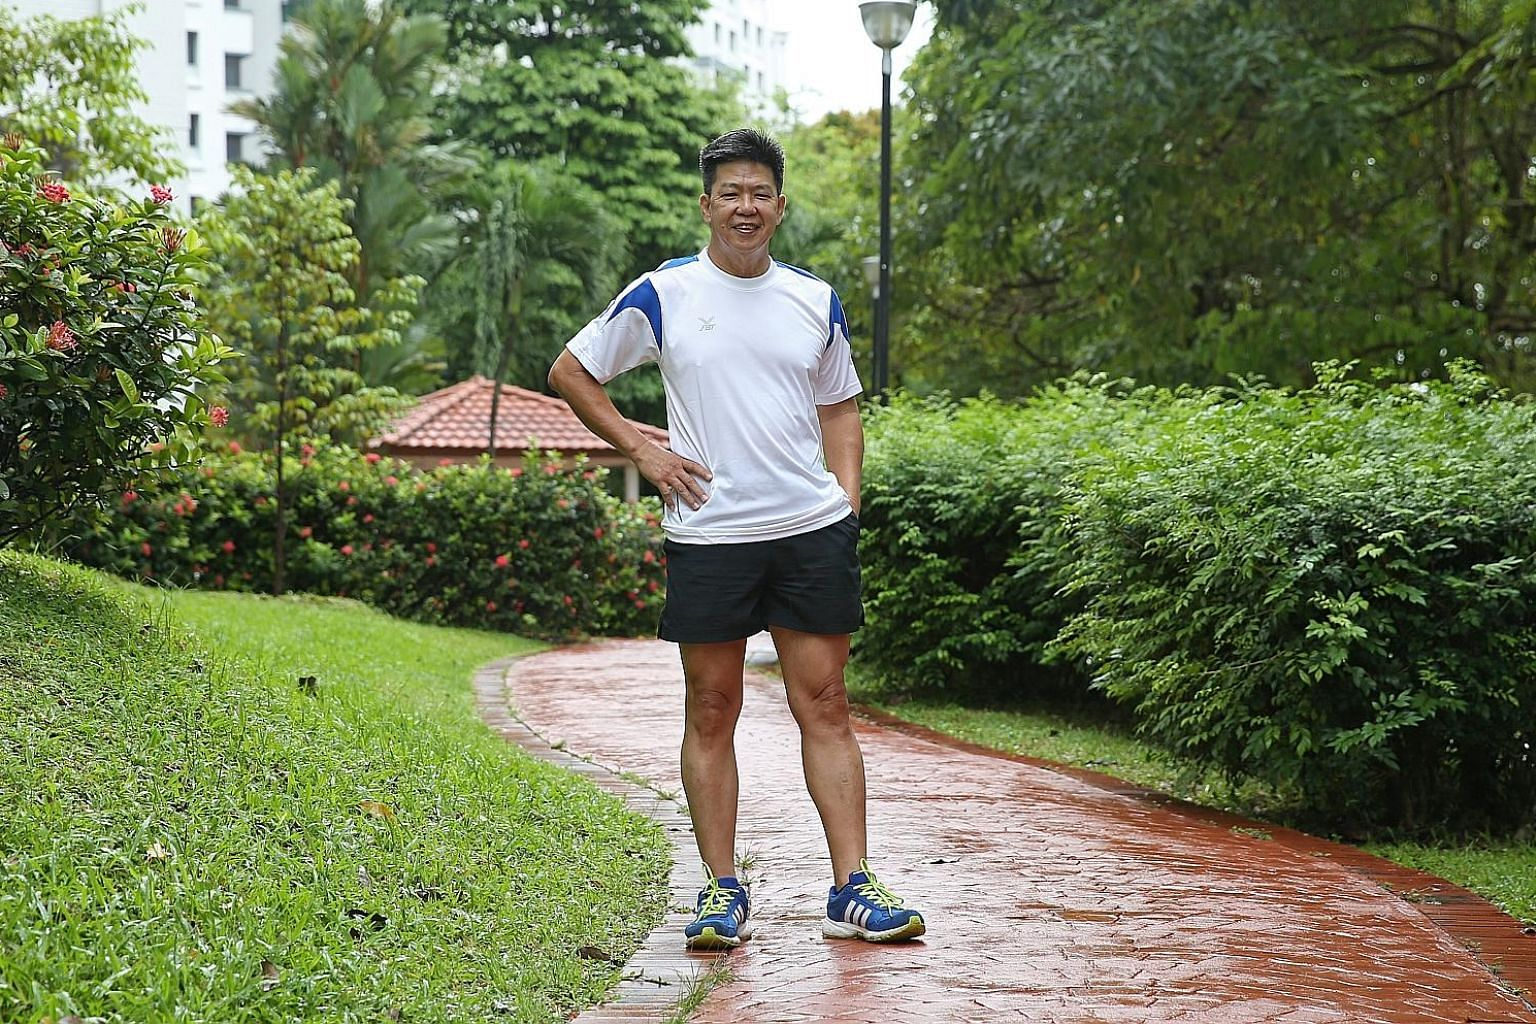 Mr Koh Teck Hoe once smoked 20 sticks a day. He swore off the habit after discovering that he had stage three colorectal cancer and that smoking could have played a role. Since his recovery, he jogs every day and plays badminton with his family durin